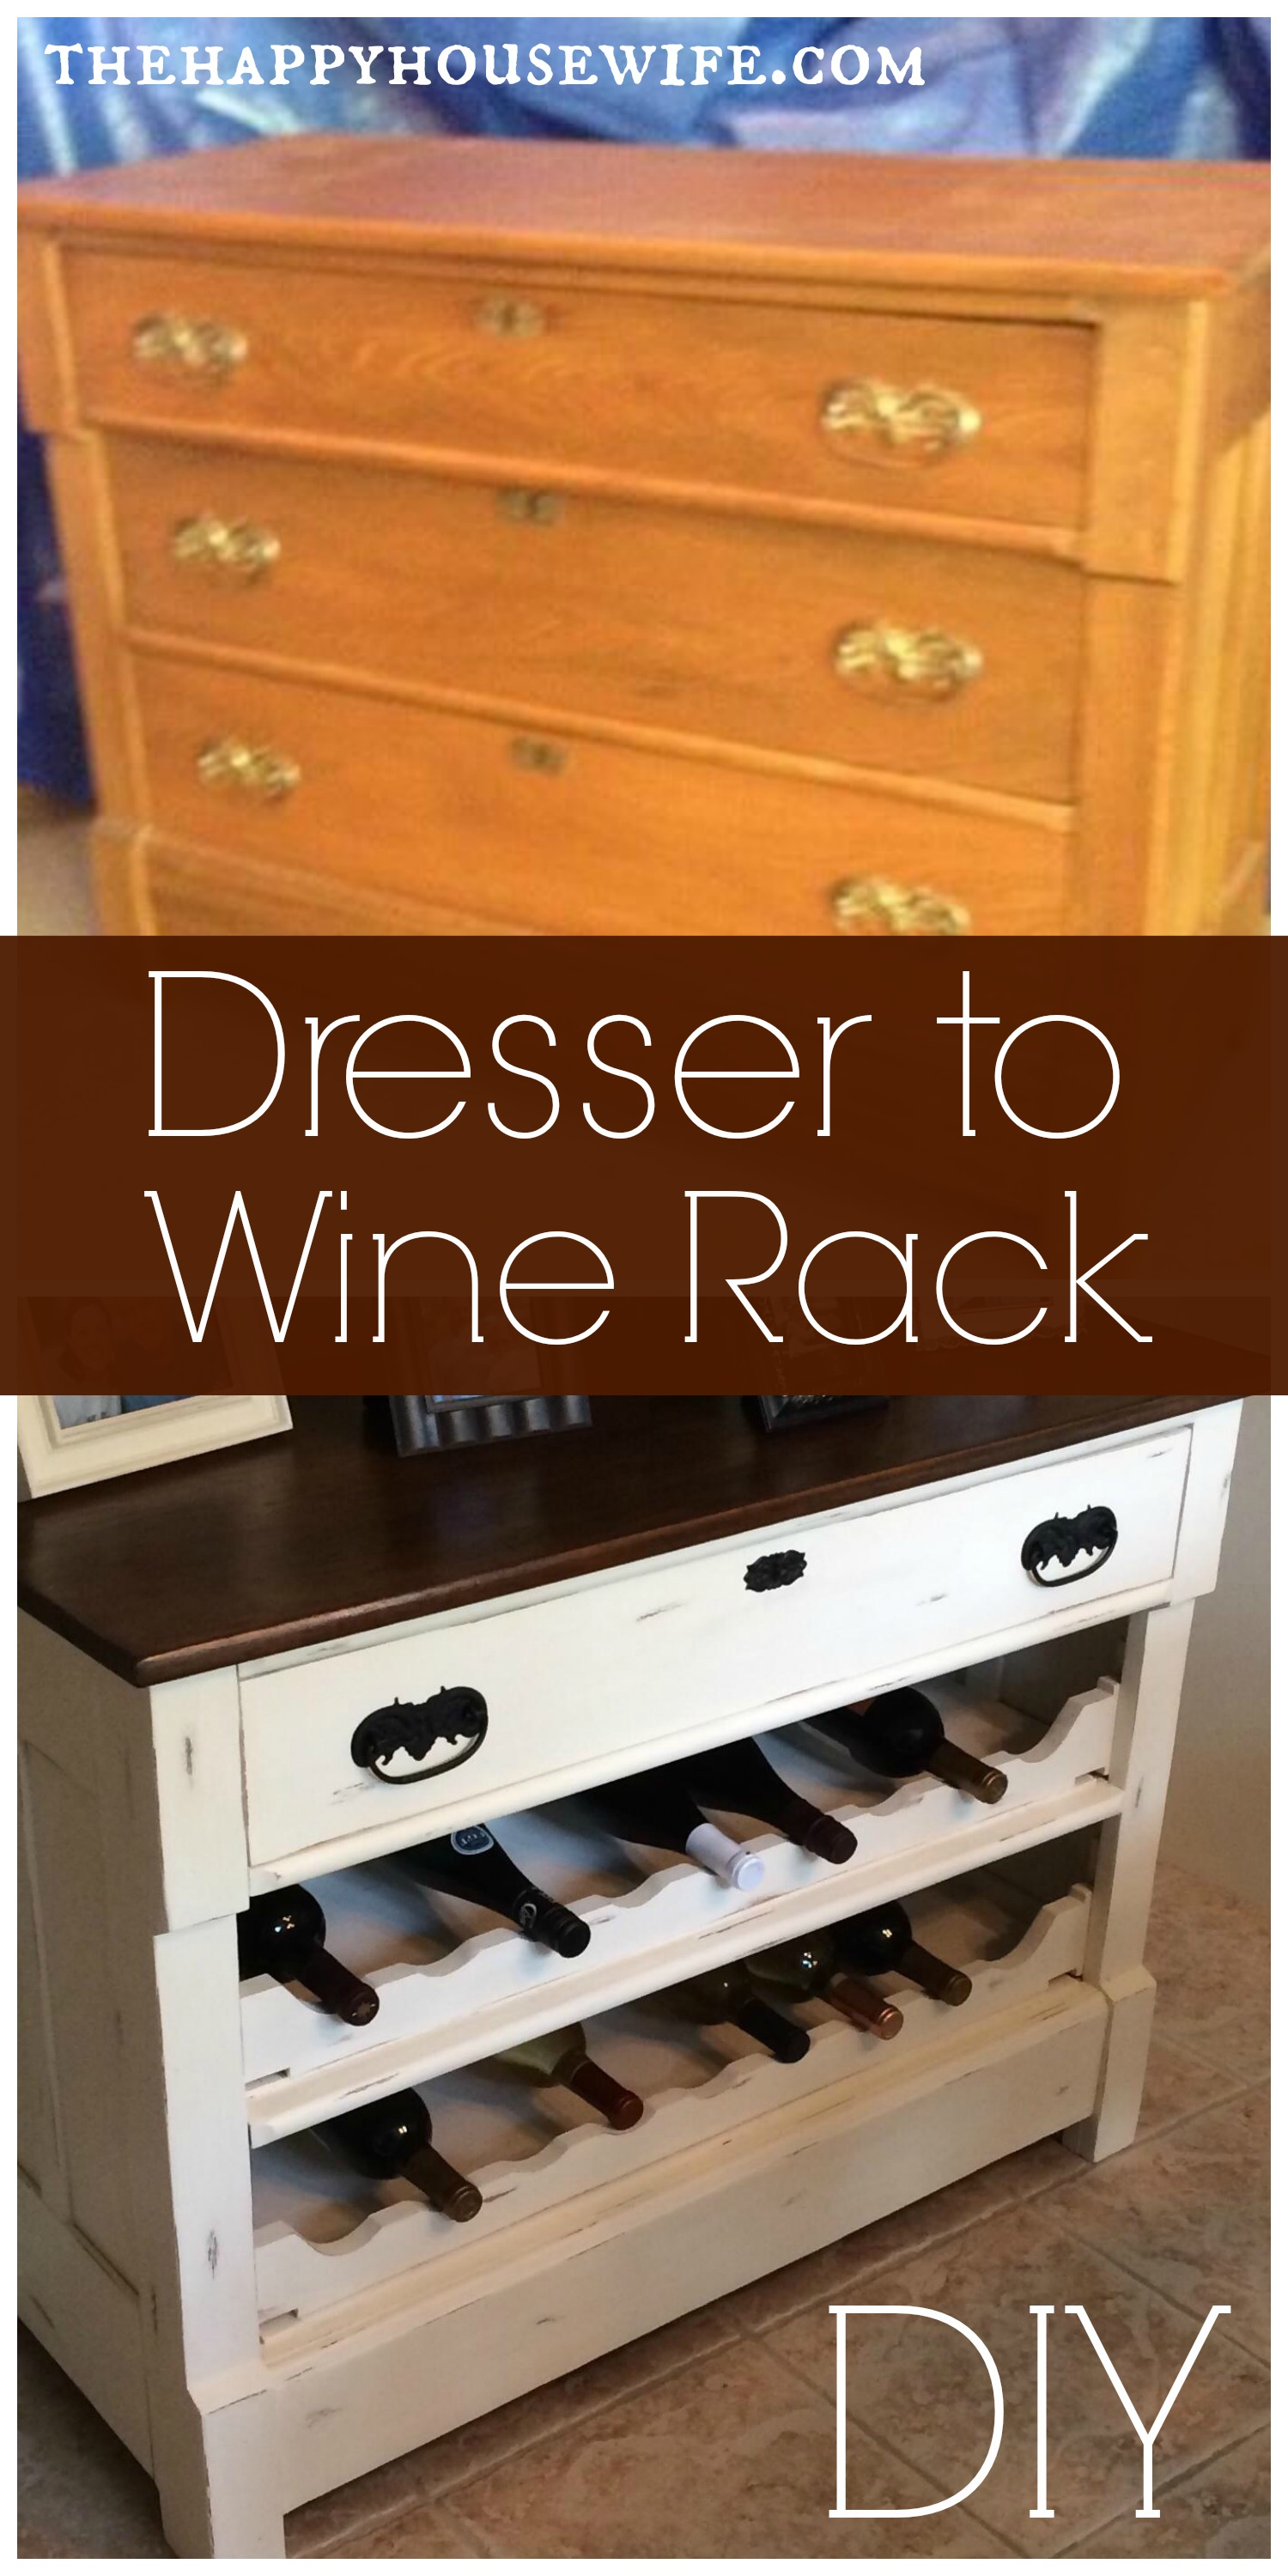 Dresser to Wine Rack DIY - The Happy Housewife™ :: Home ...